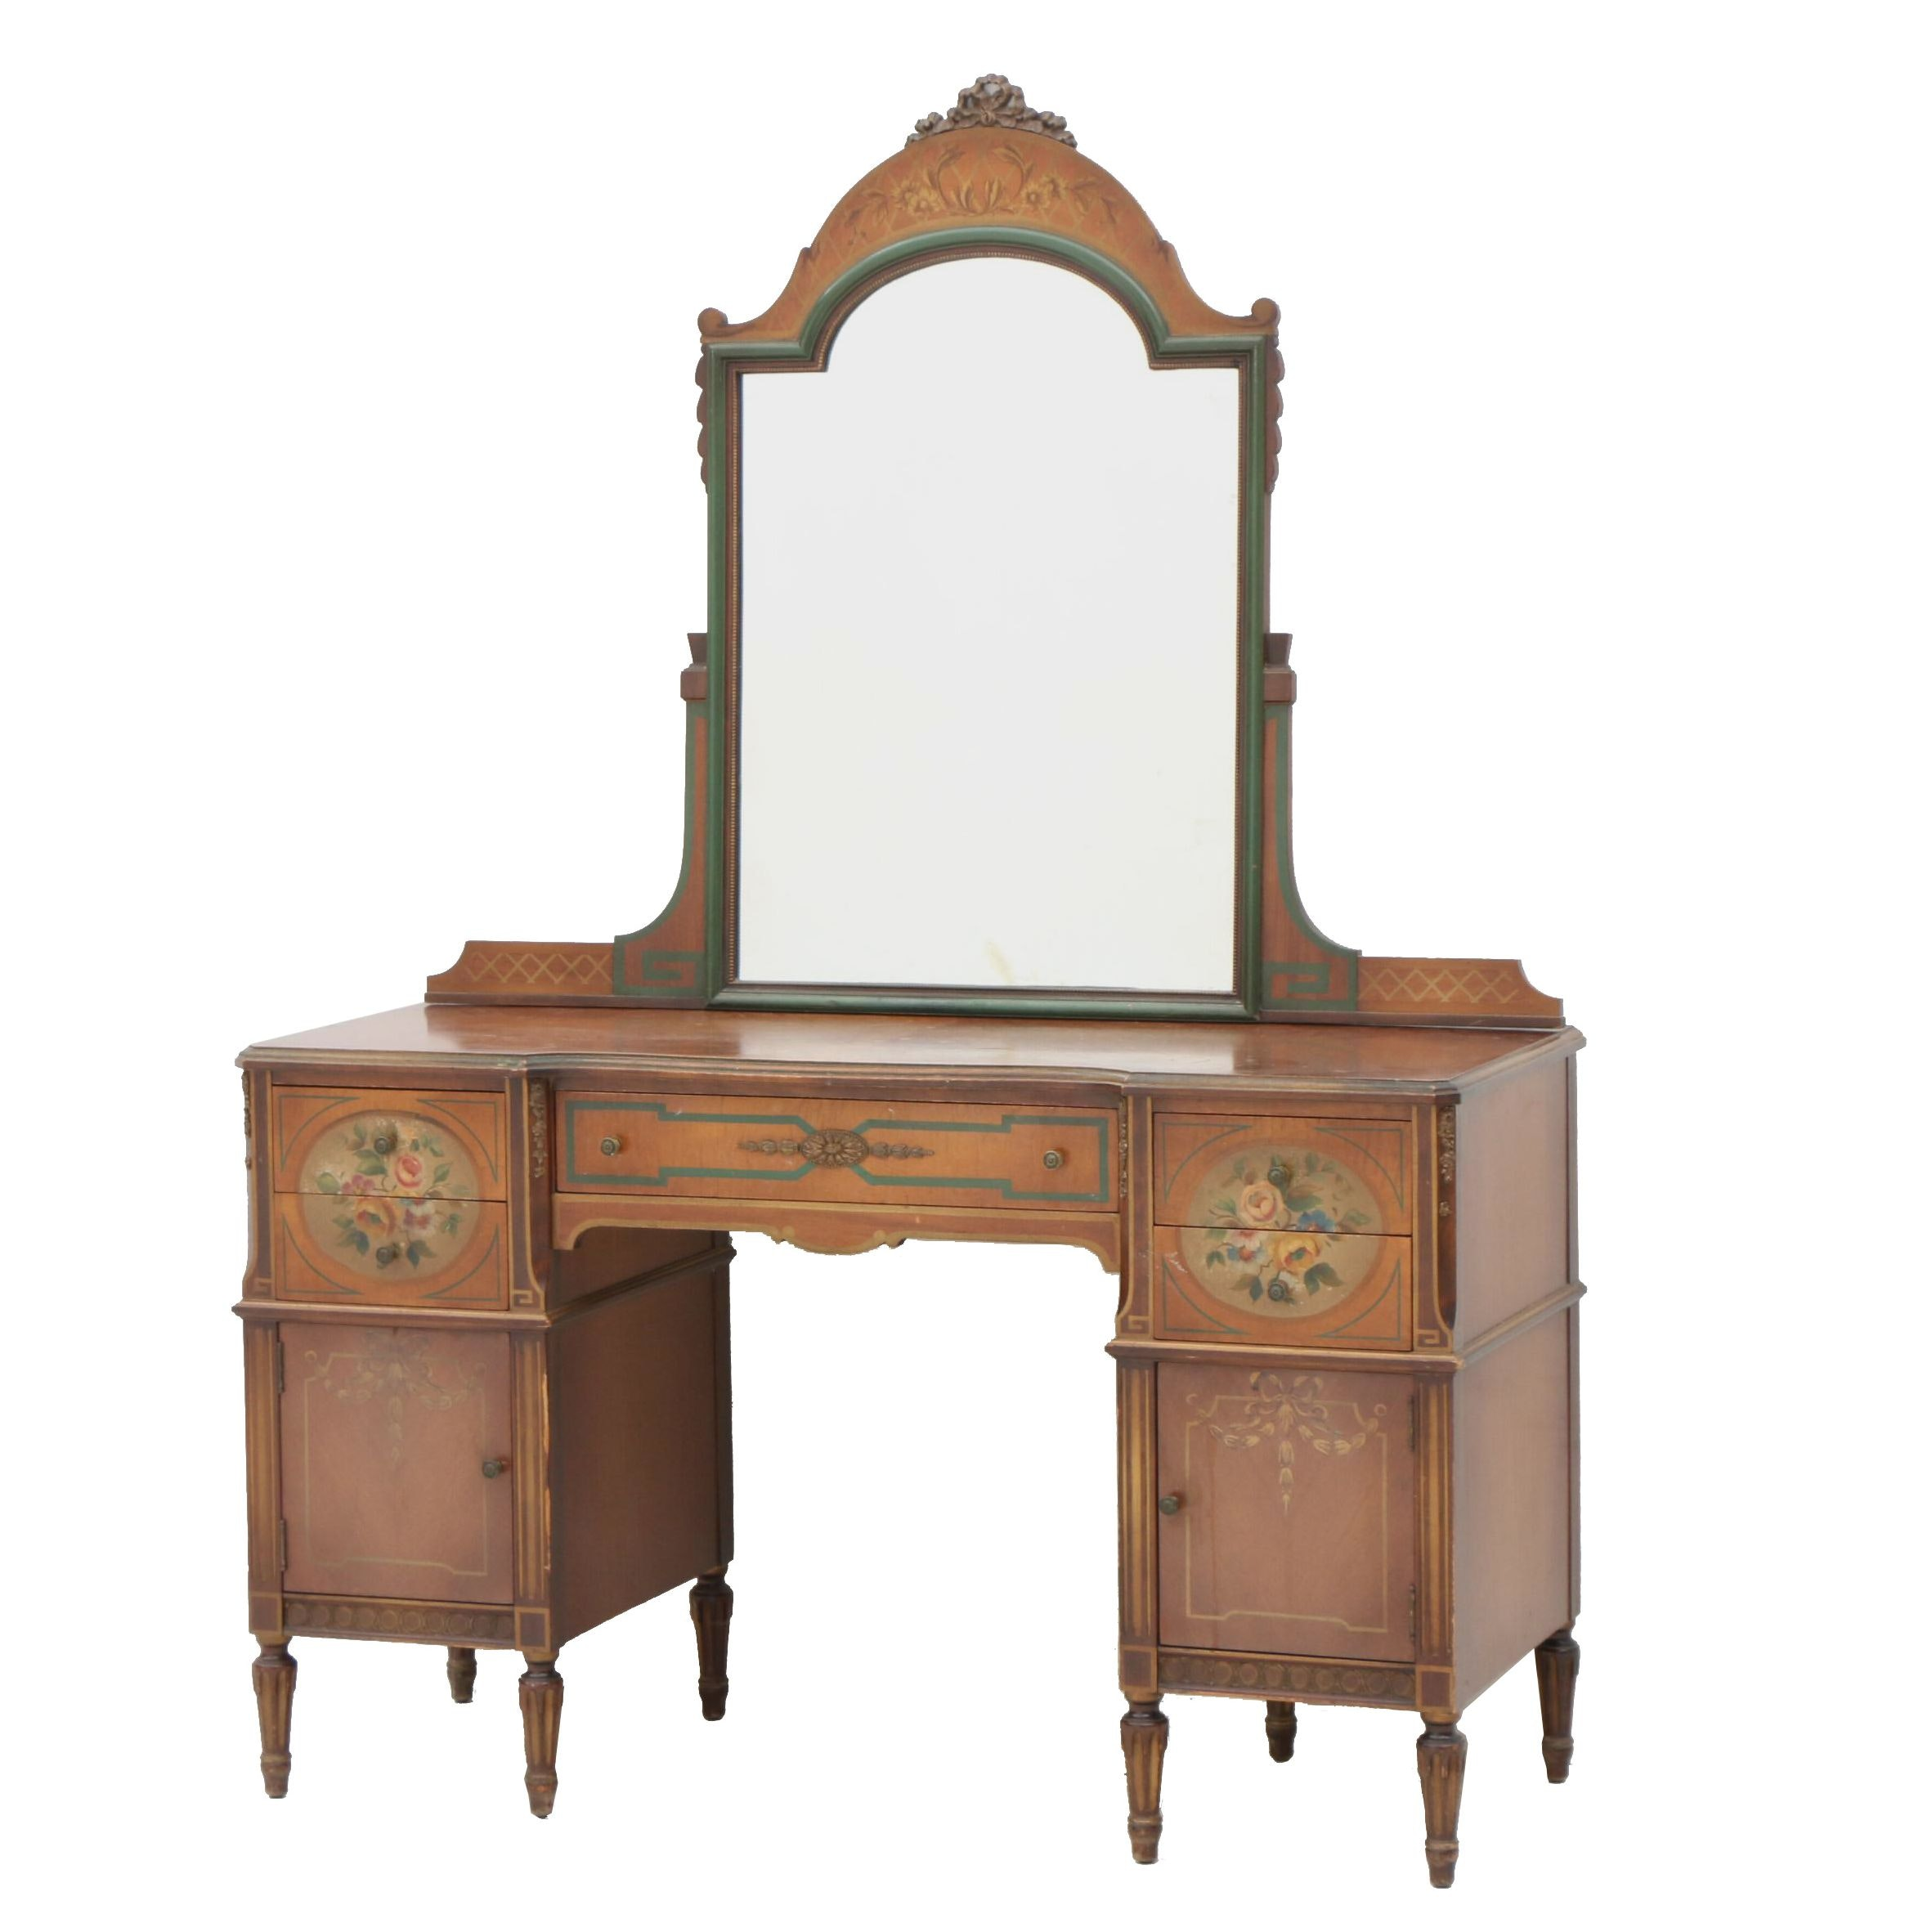 Painted Vanity Dresser with Mirror